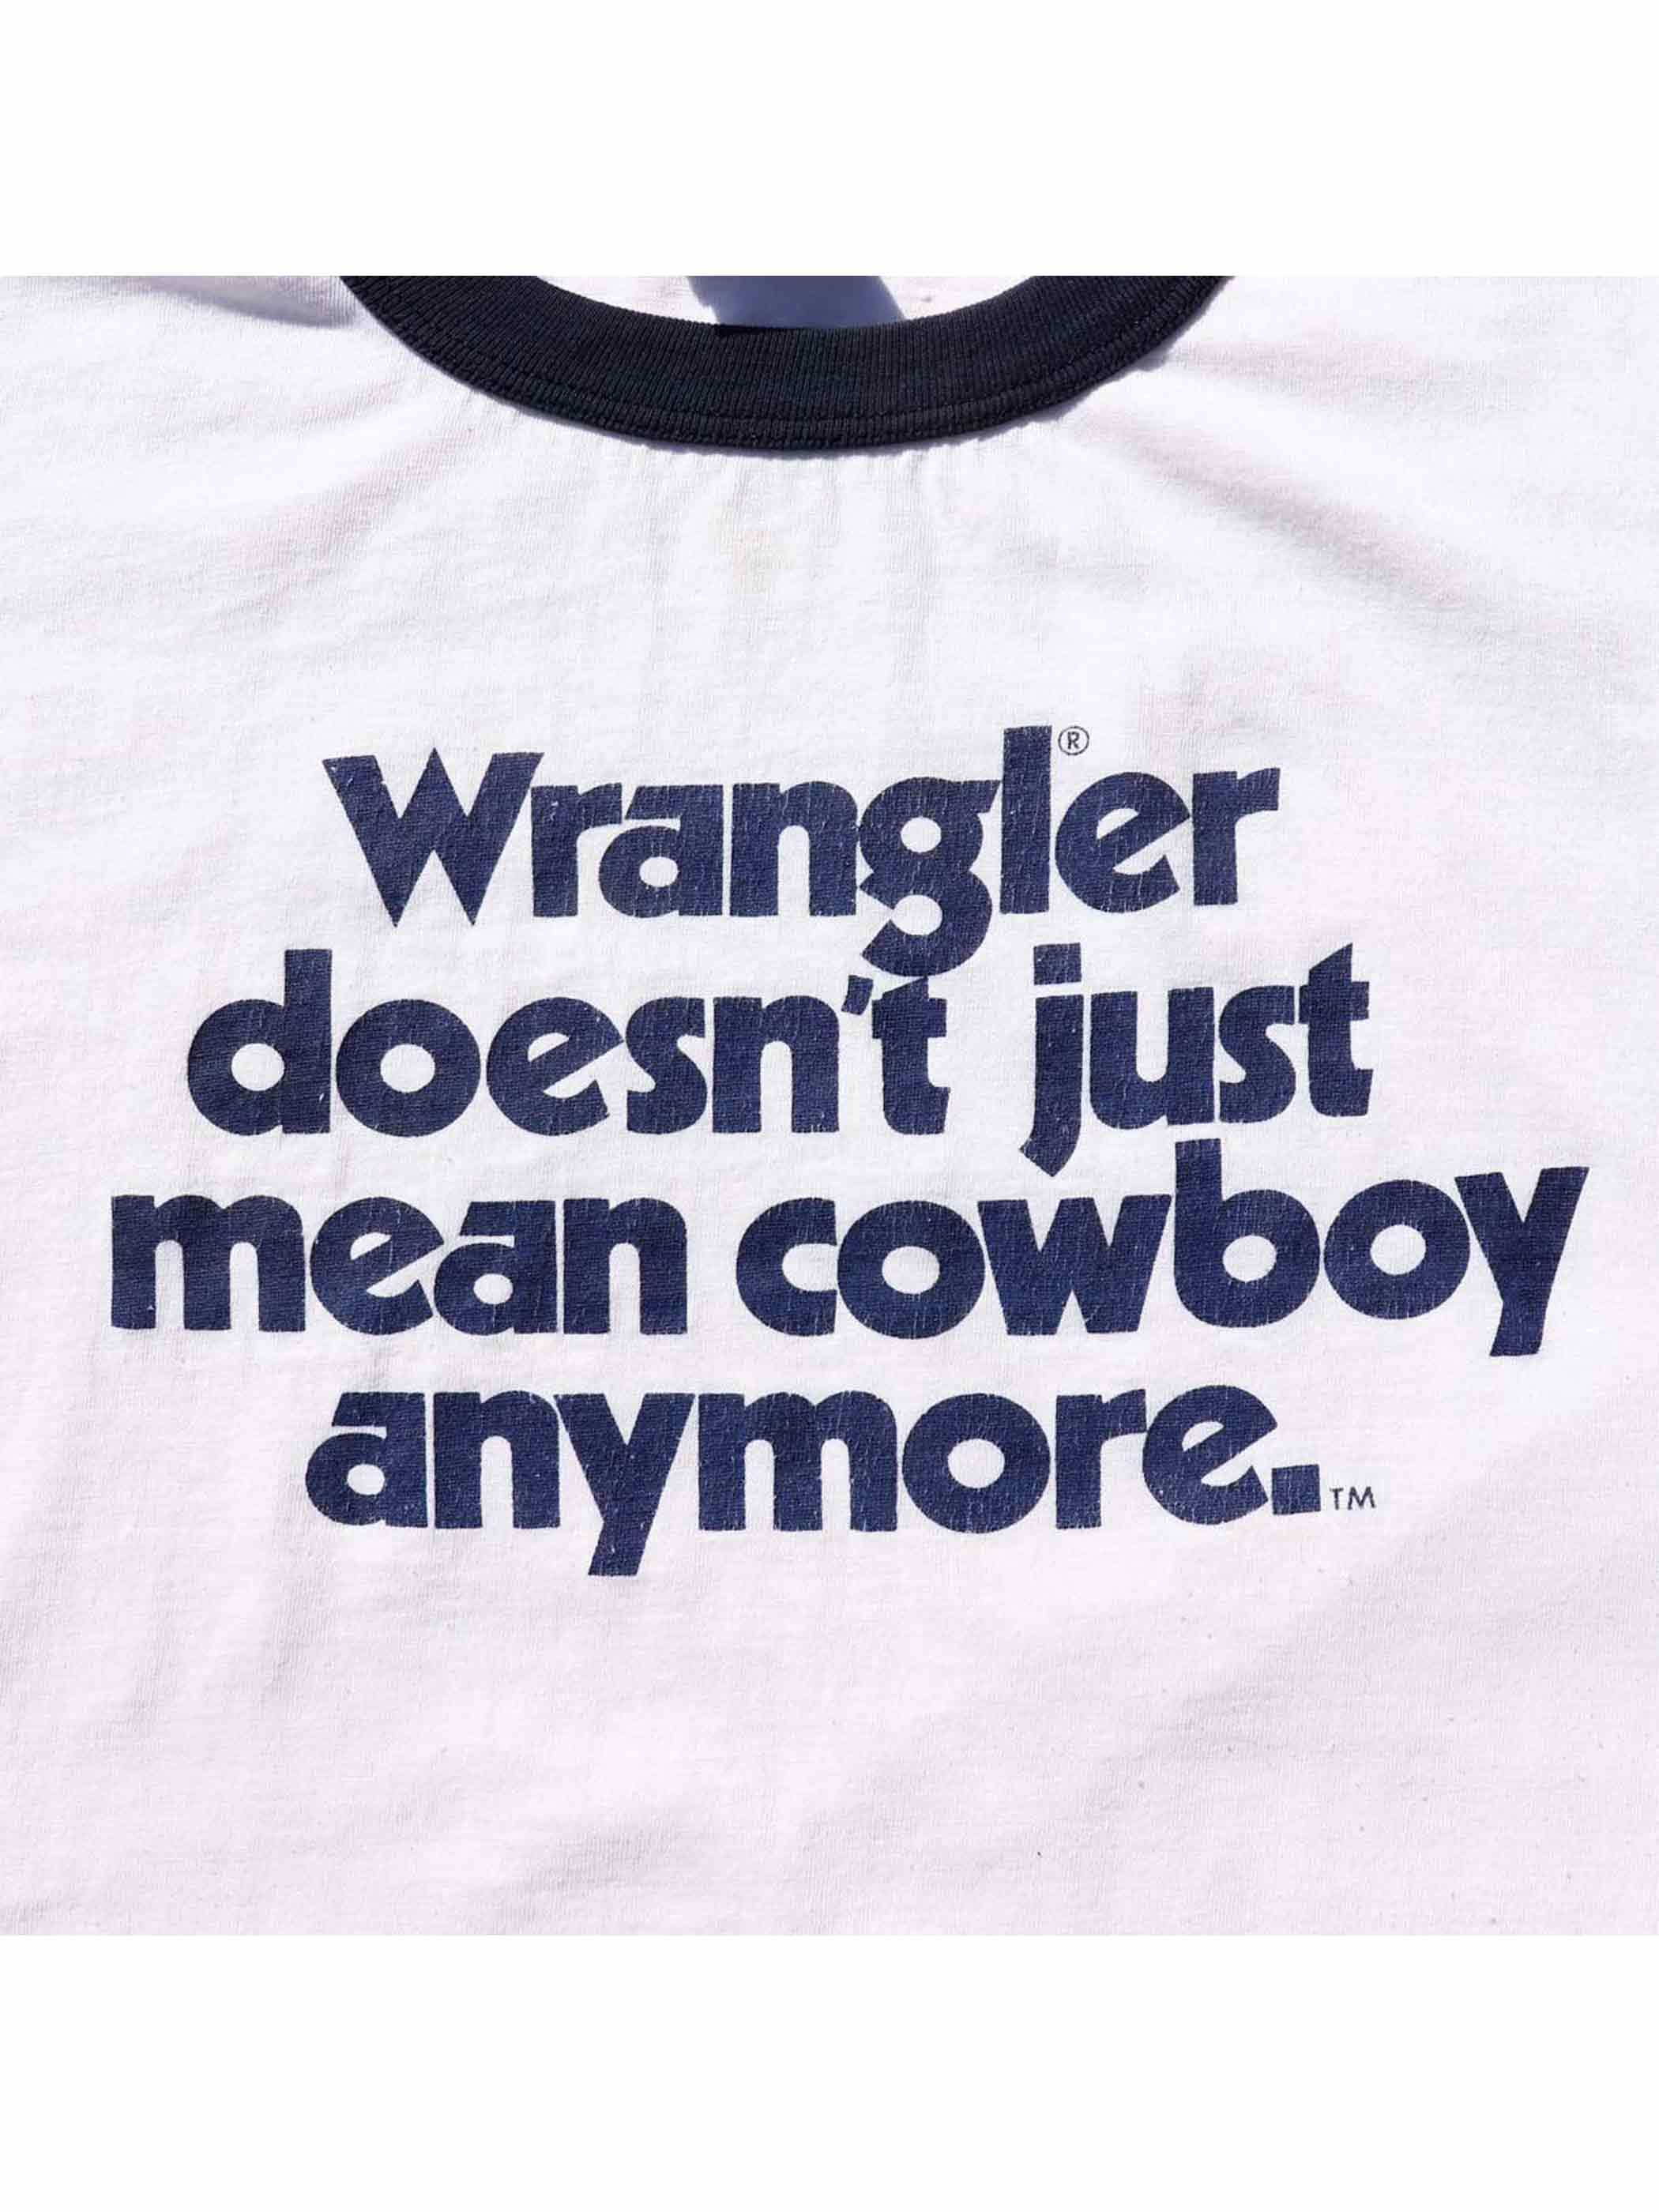 90's WRANGLER DOESN'T JUST MEAN COWBOY ANYMORE USA製 リンガーTシャツ [XL]